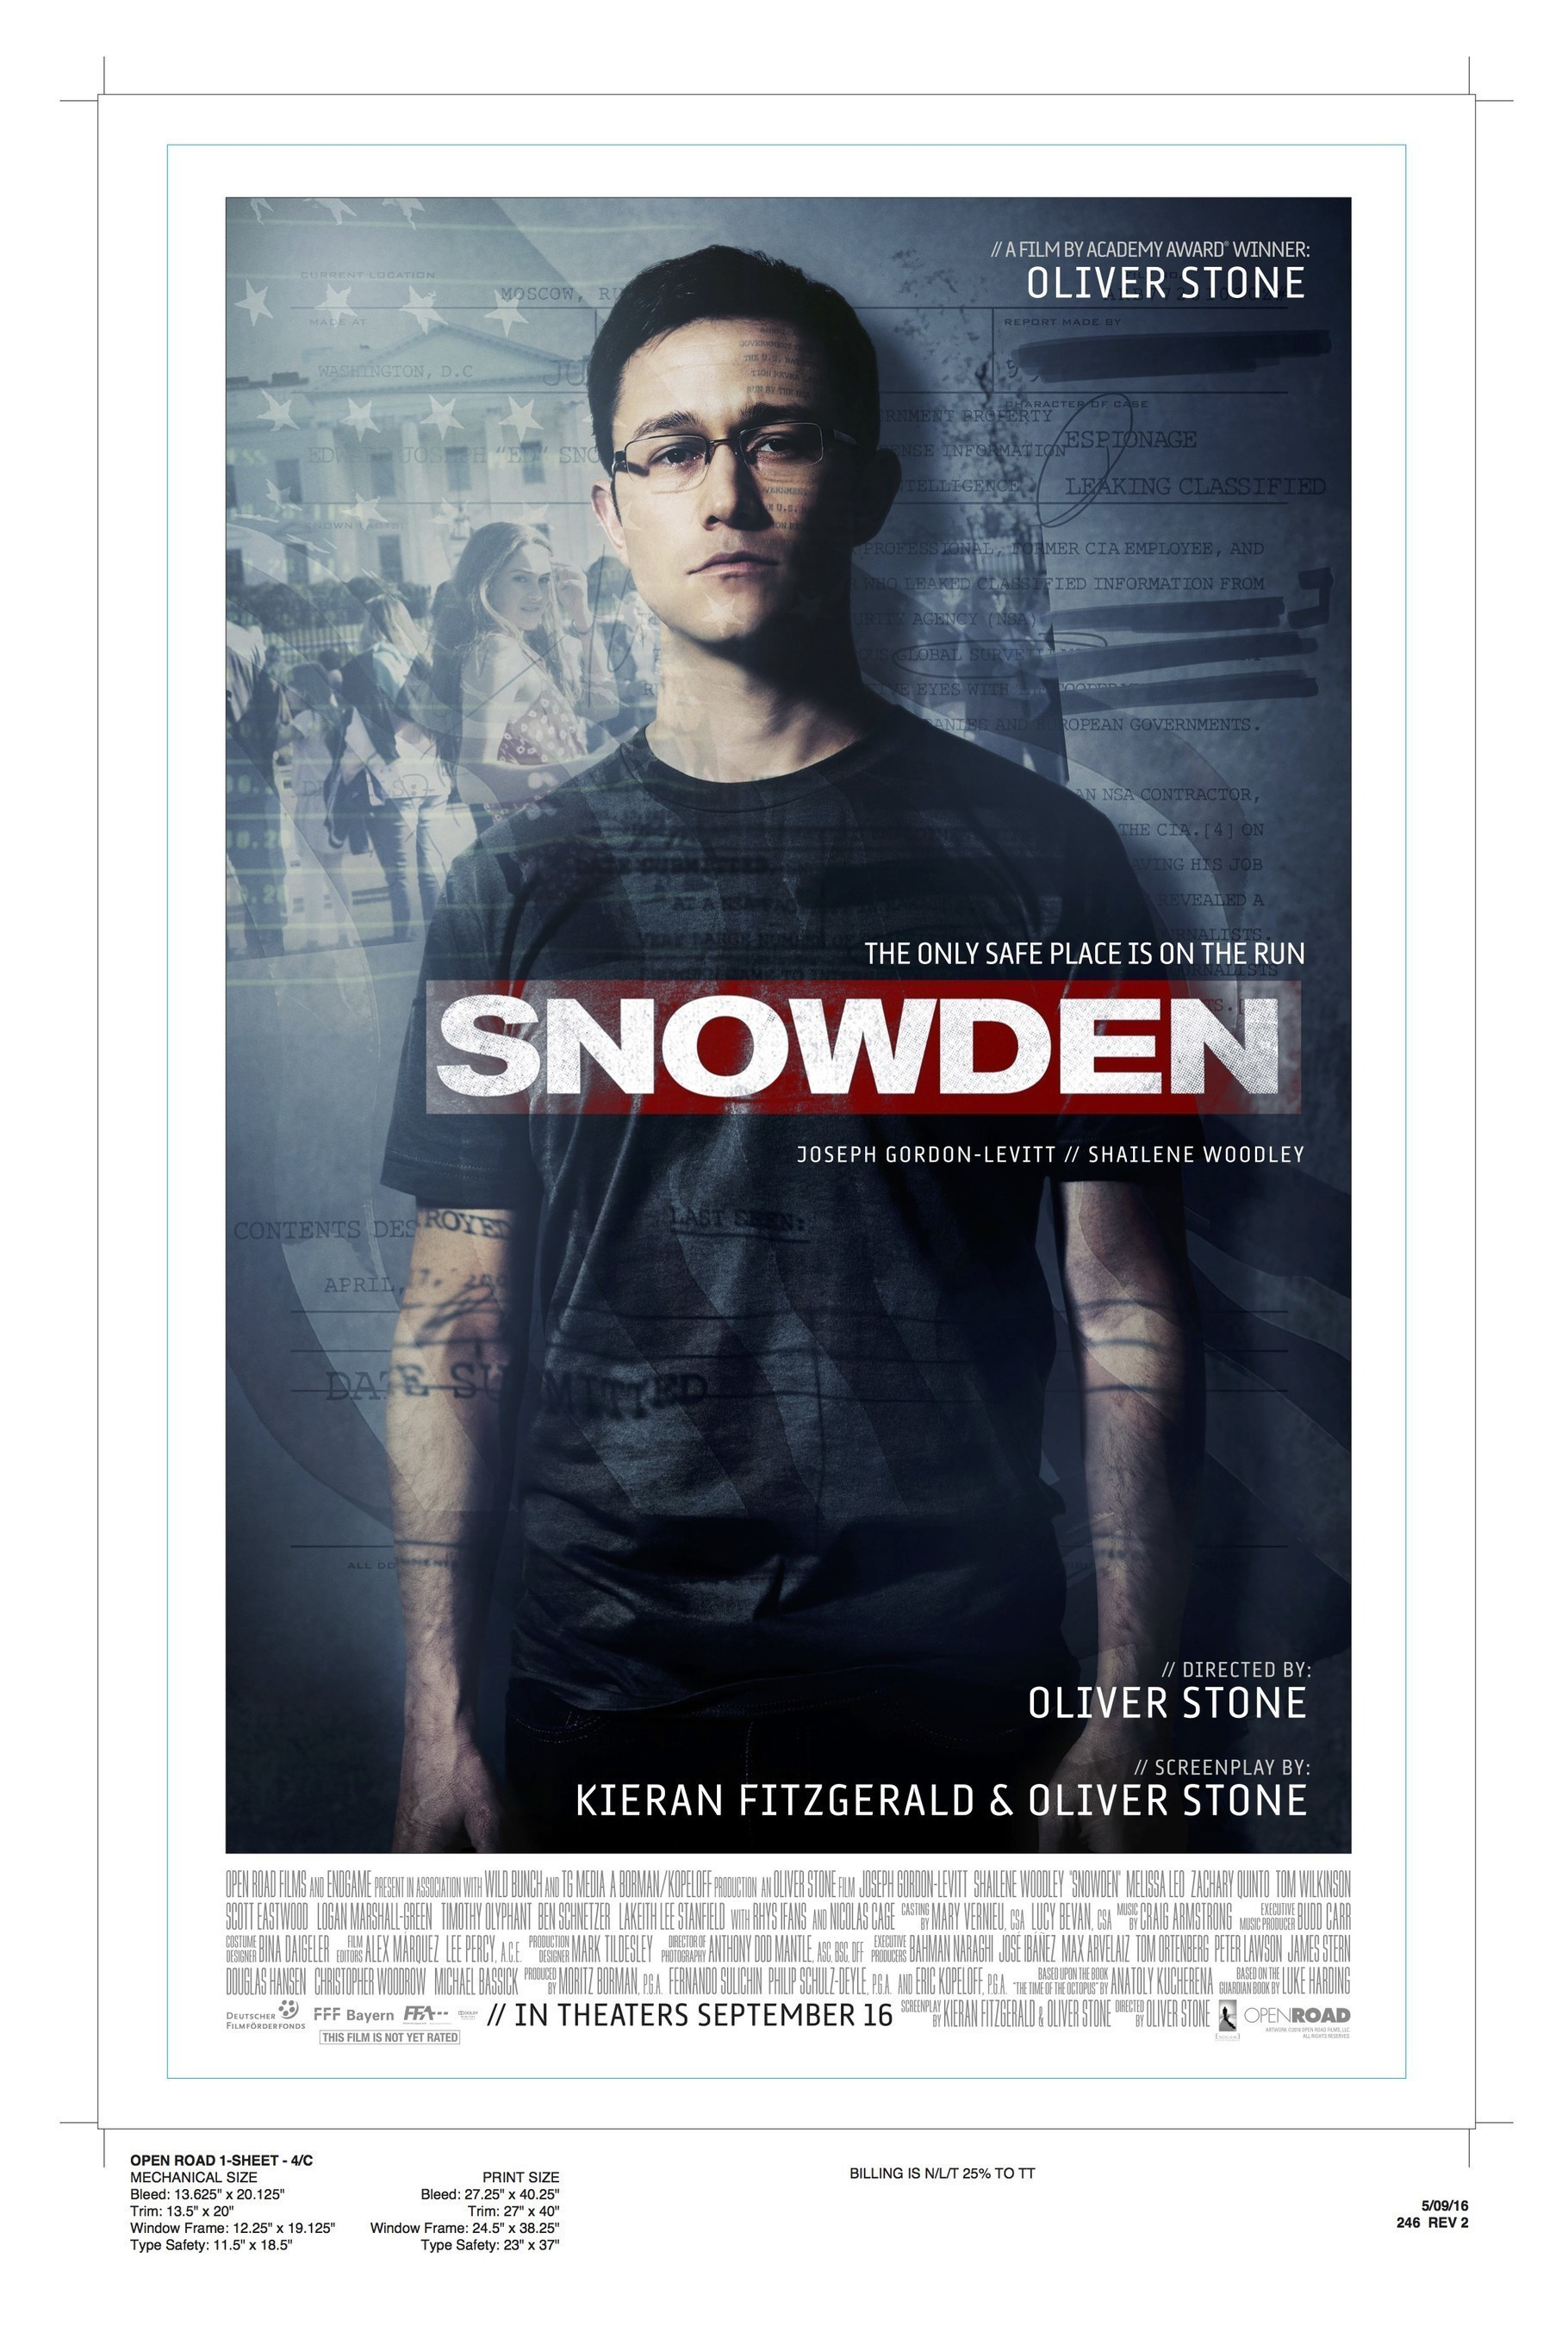 Skyhorse to Publish 'Snowden' Screenplay by Kieran Fitzgerald and Oliver Stone